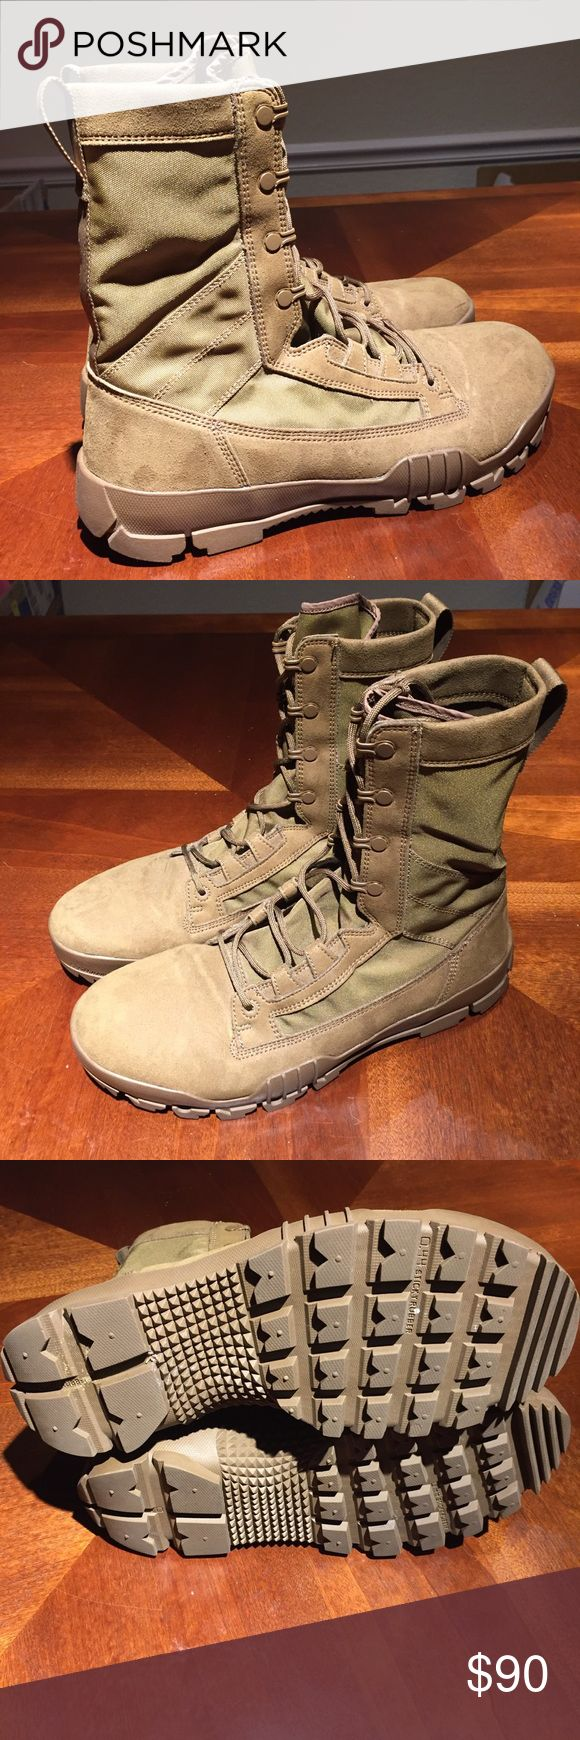 Nike SFB Jungle Boots 10.5 Selling a pair of Nike SFB Jungle Boots as pictured. Have only been worn once and have since been collecting dust in my footlocker.  Inspired by Bill Bowerman's service in the 10th Mountain Division during World War II. Crafted to help keep your feet dry, protected and stable when it matters most; the SFB Jungle Boot is equipped with drainage ports, a puncture-resistant layer, and an aggressive outsole pattern. Nike Shoes Boots